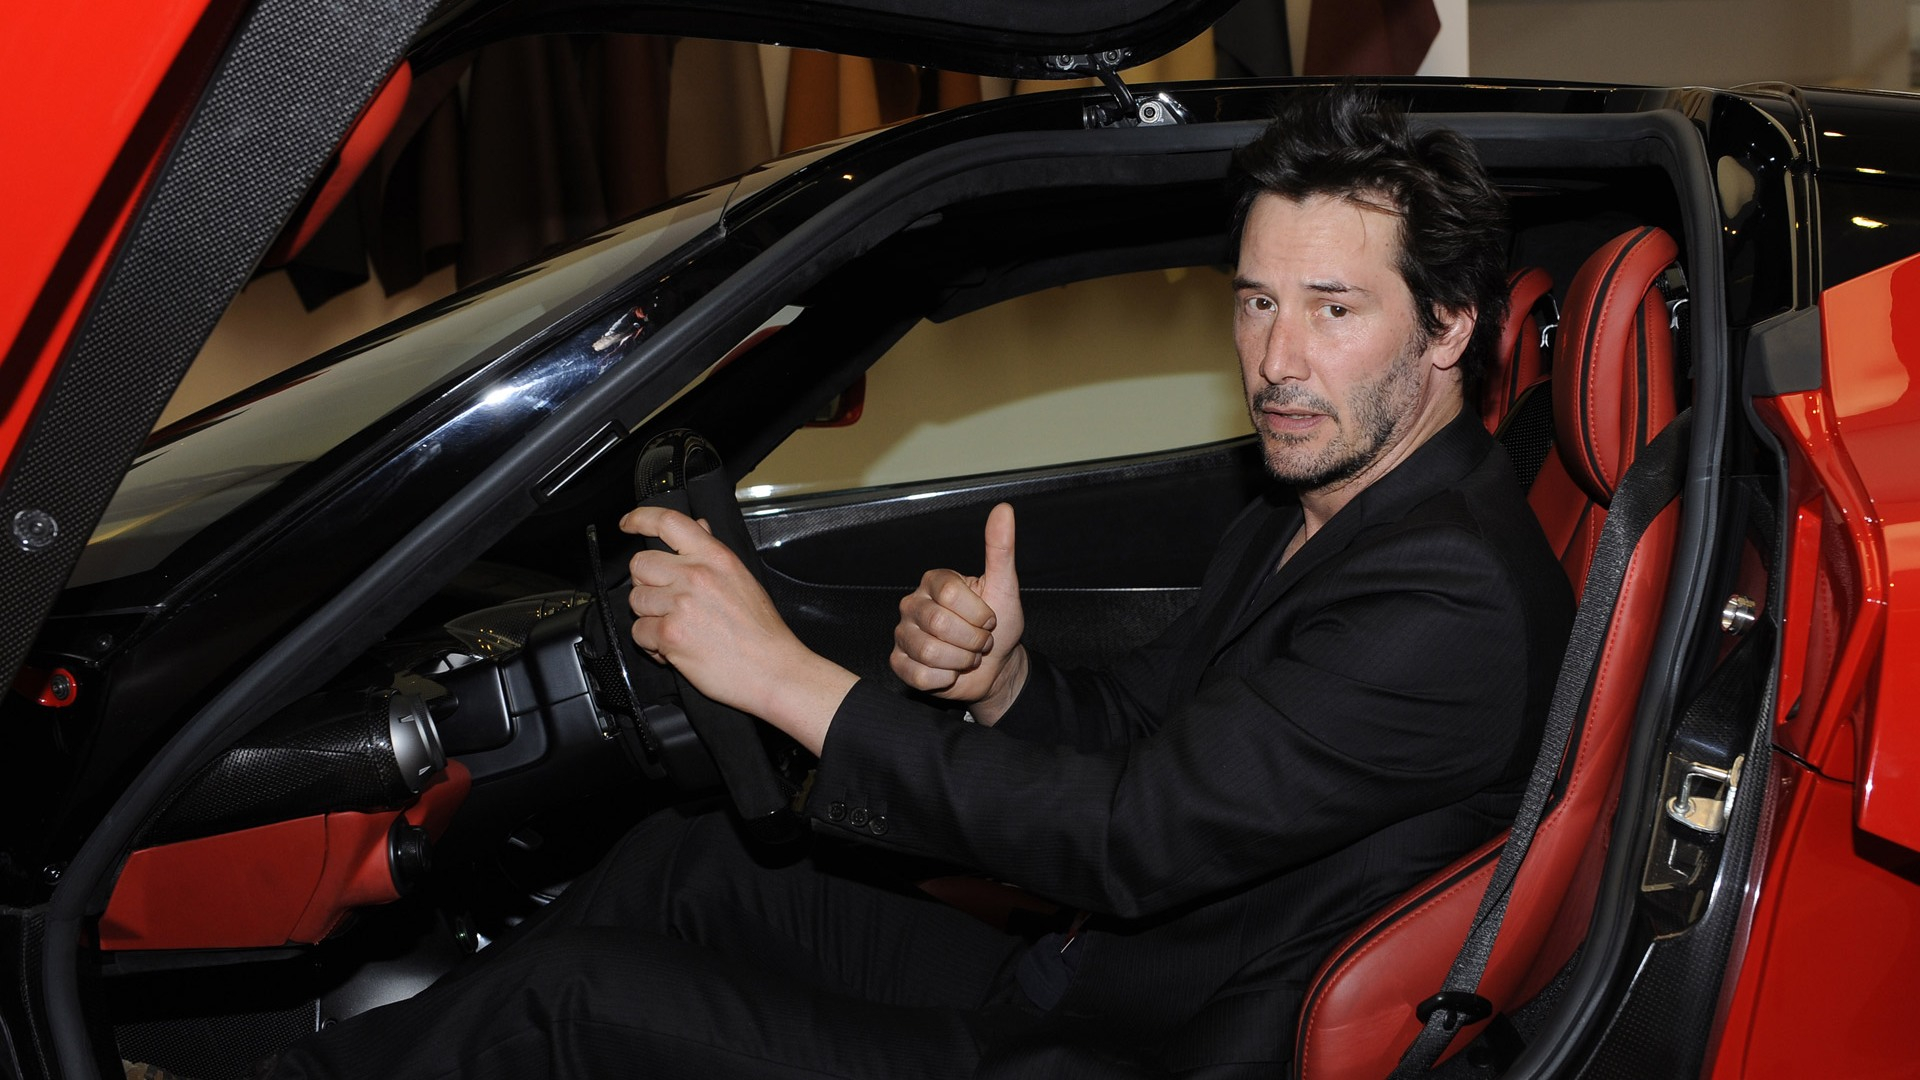 Keanu Reeves Contact Number, Address, and Email